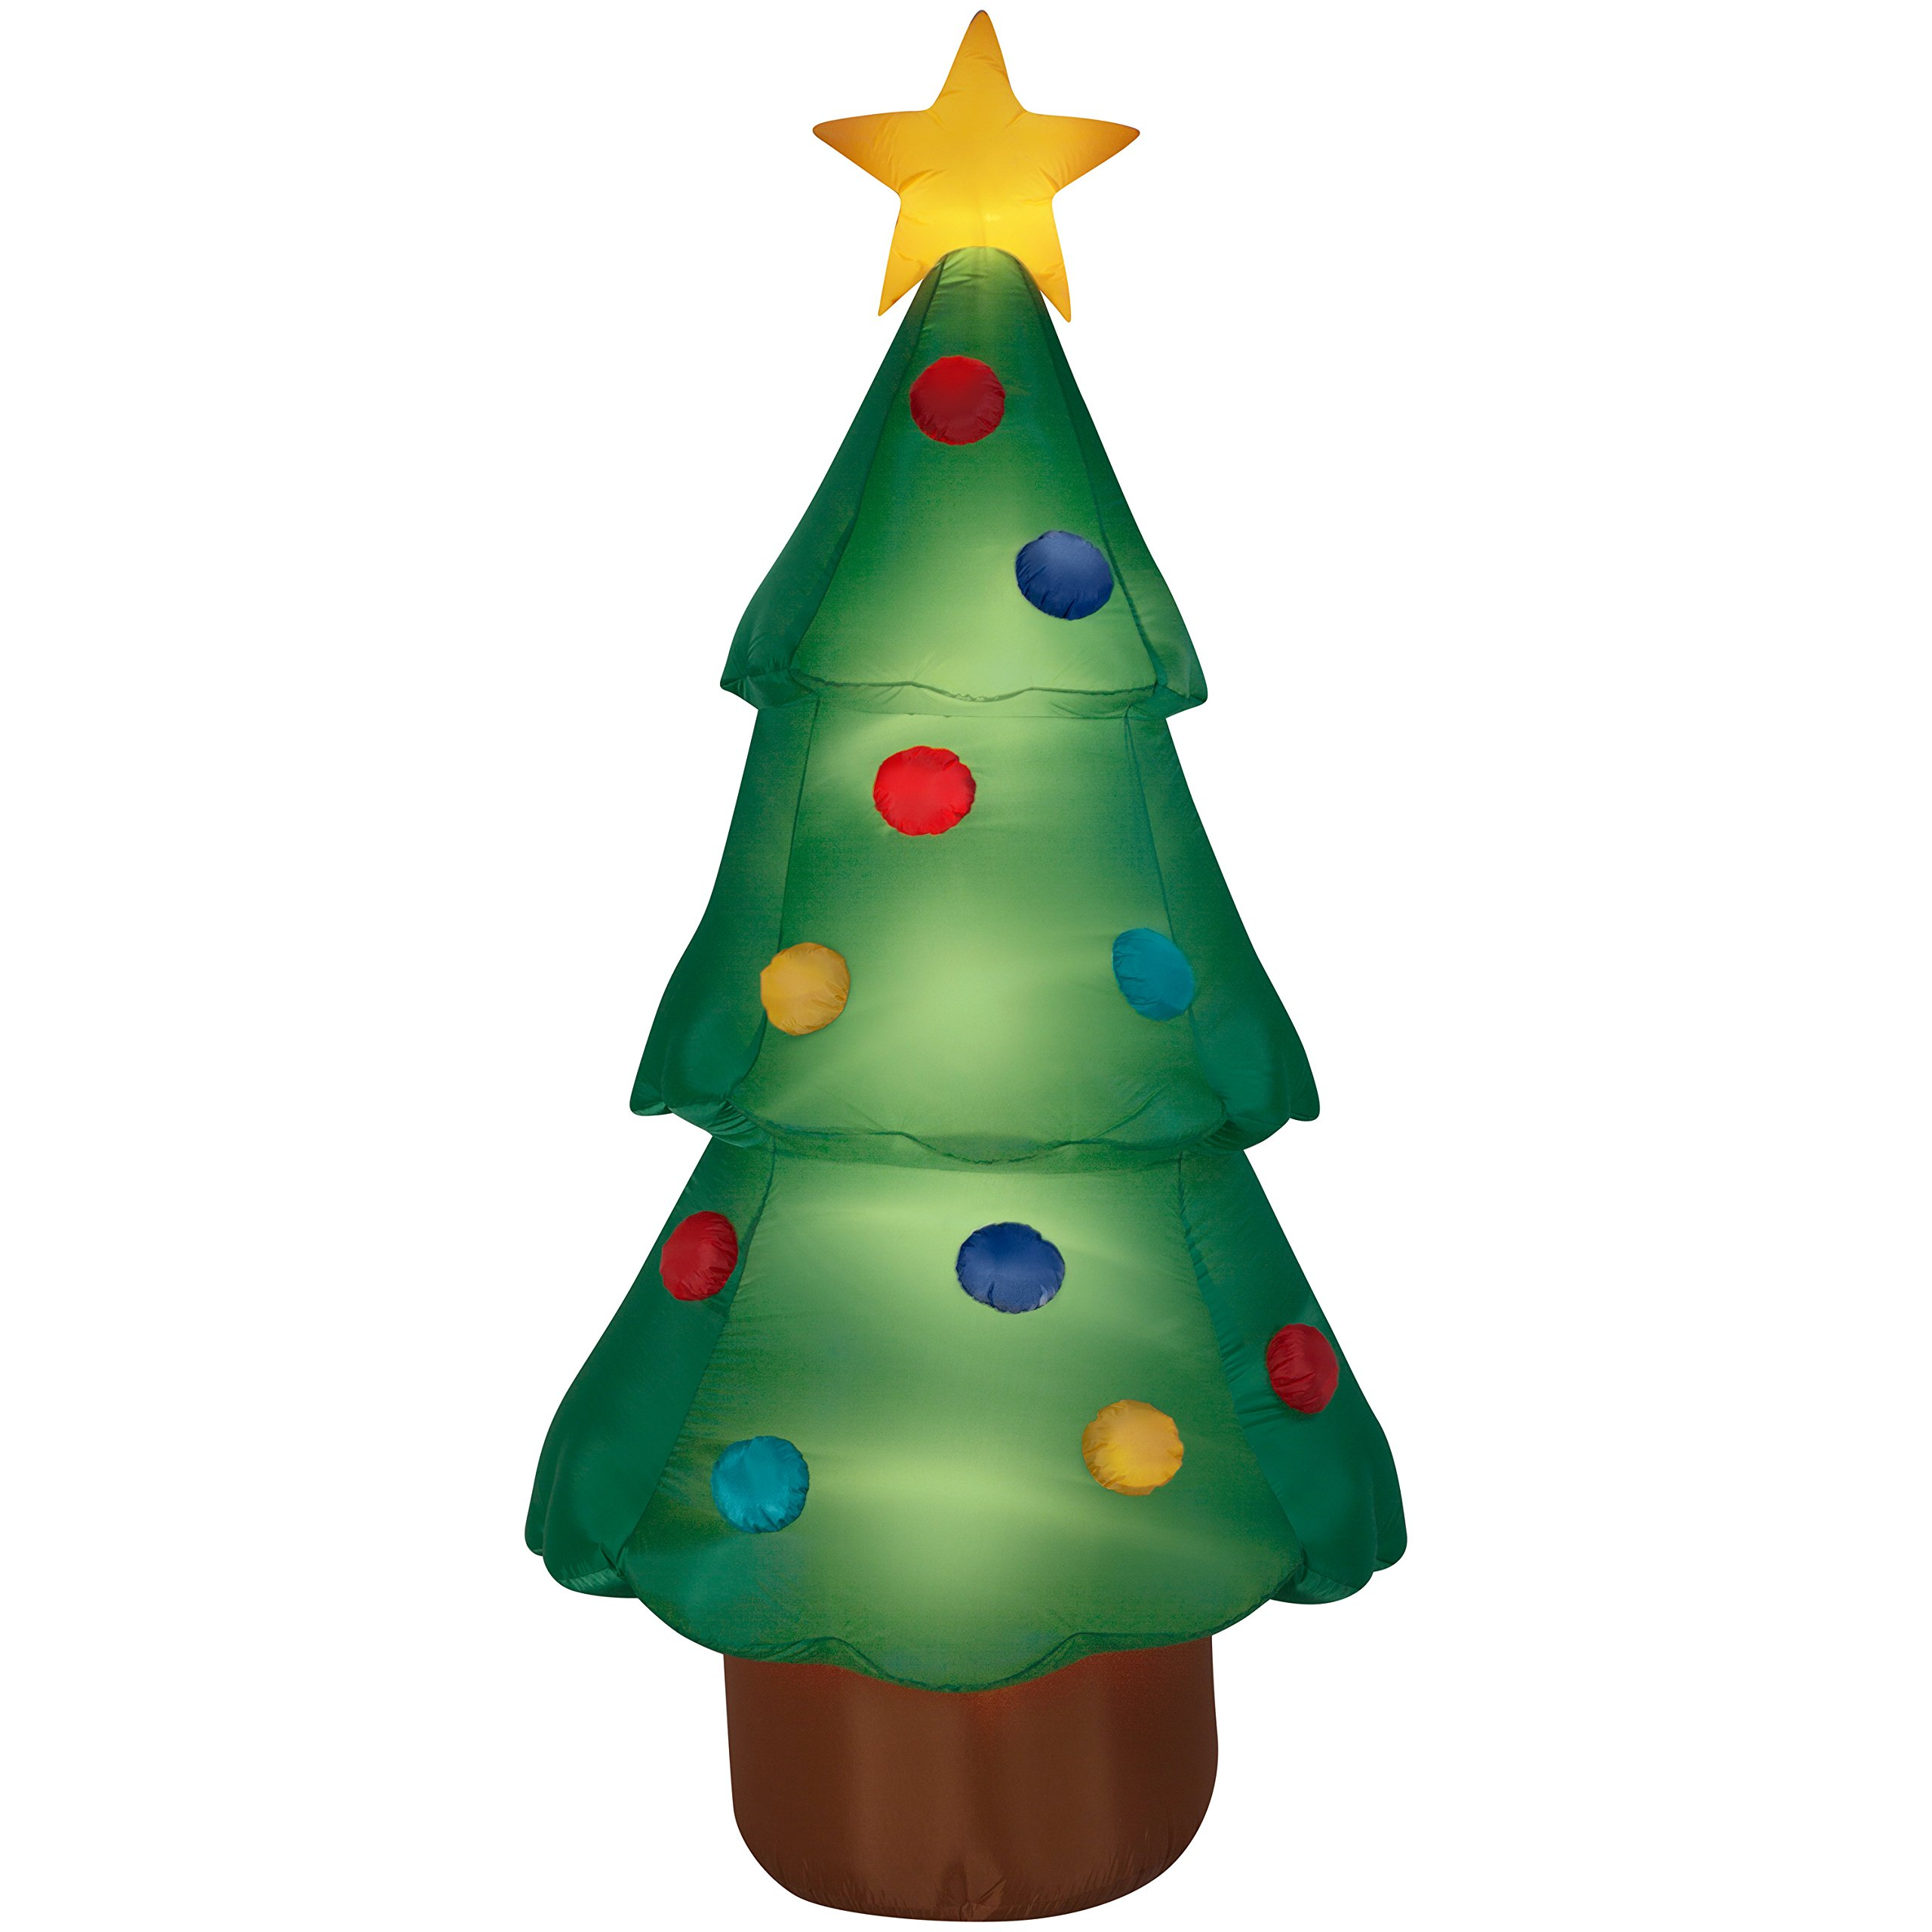 Airblown Inflatable-Christmas Tree Giant 10ft tall by Gemmy Industries by Airblown Inflatable